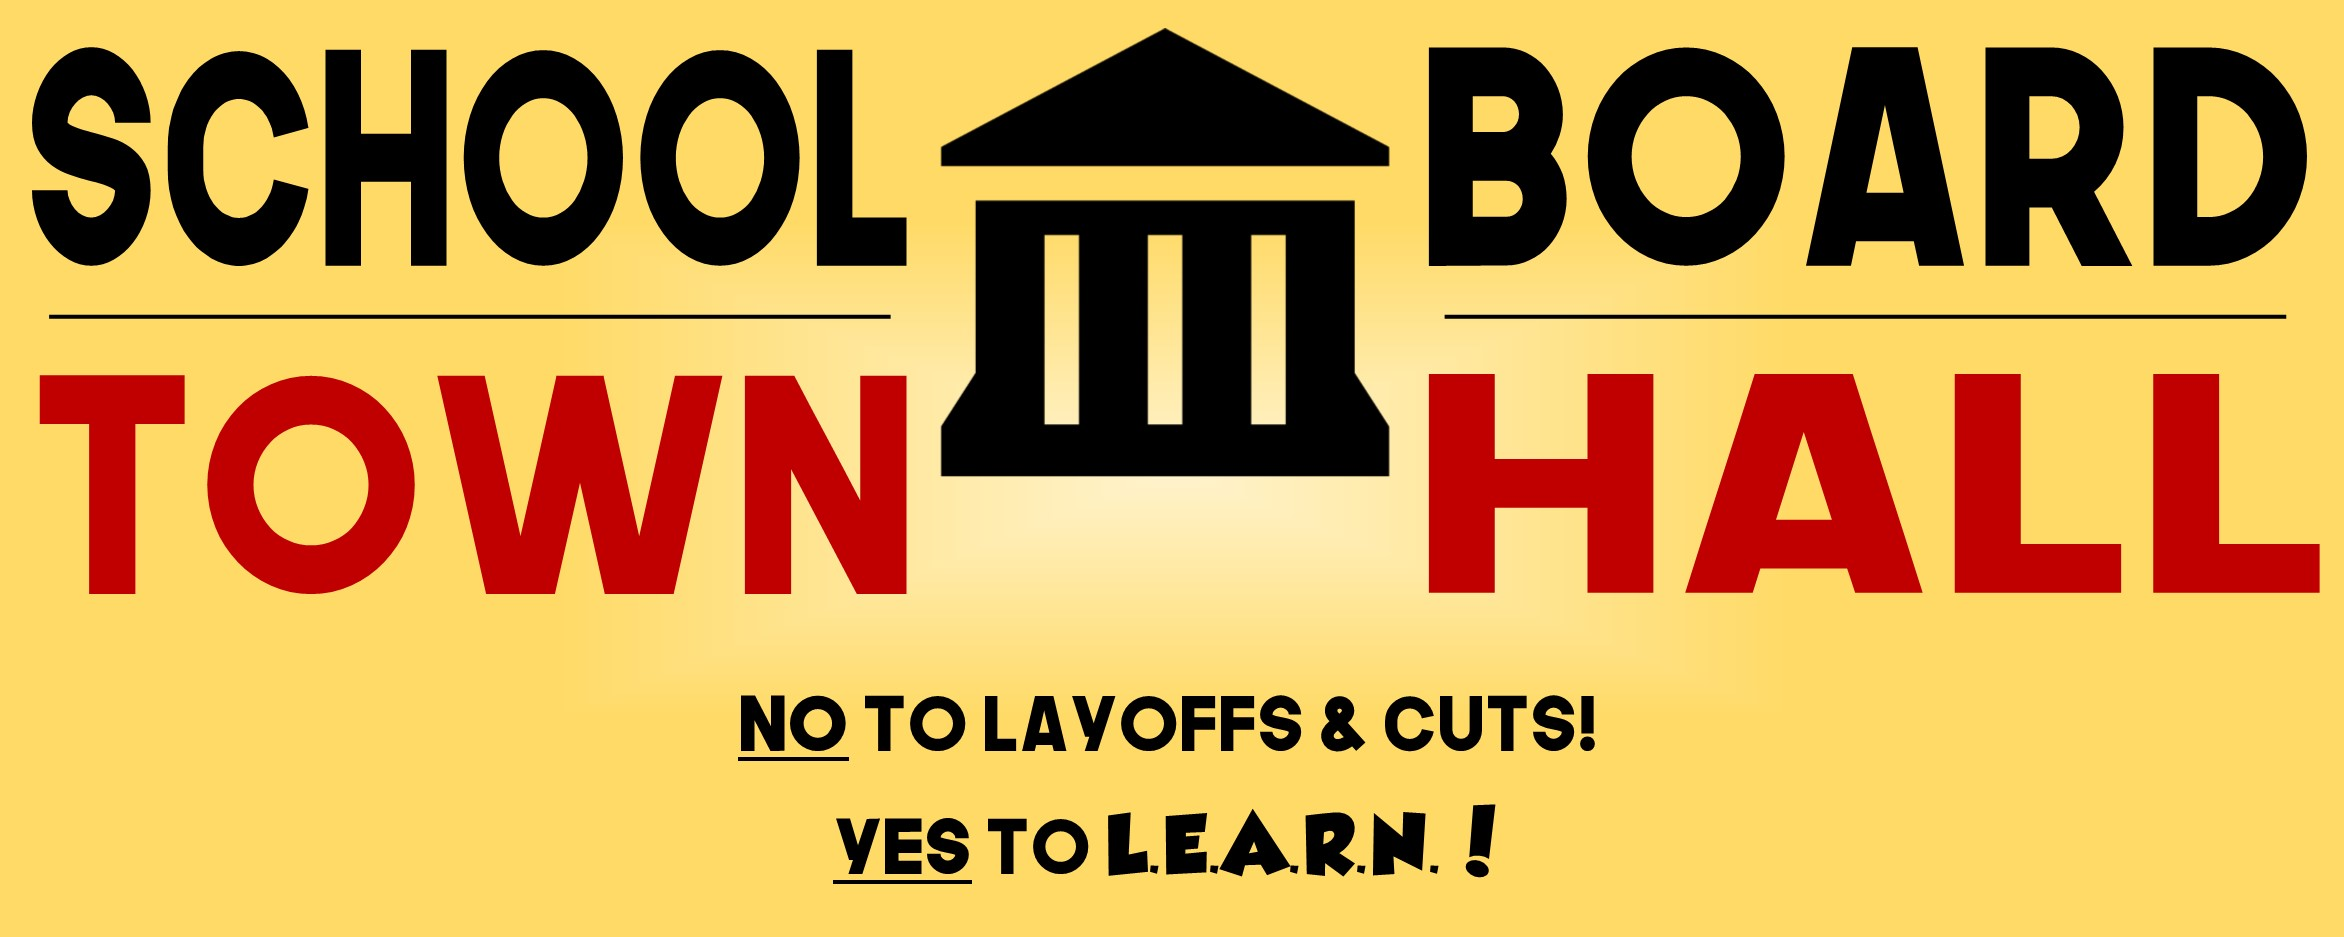 School_board_town_hall_-_action_network_banner_-_mar_17